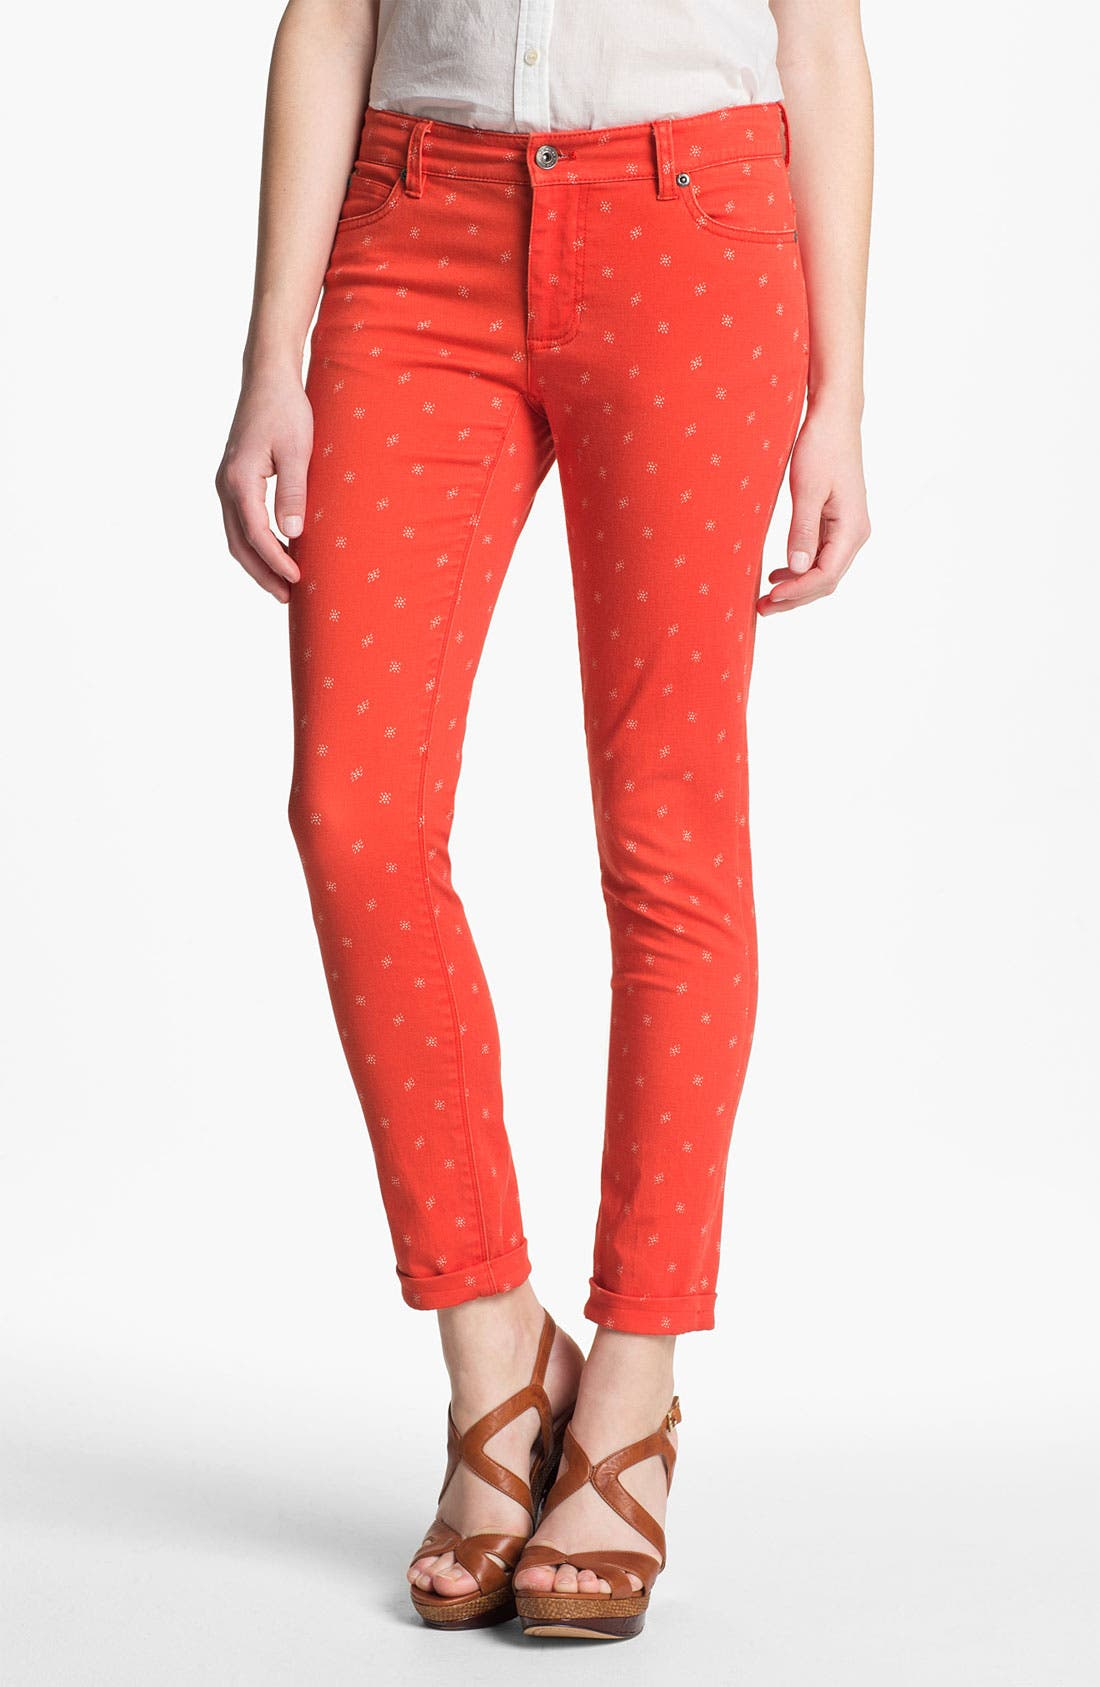 Main Image - Two by Vince Camuto 'Shorty' Star Print Jeans (Fiery Red)